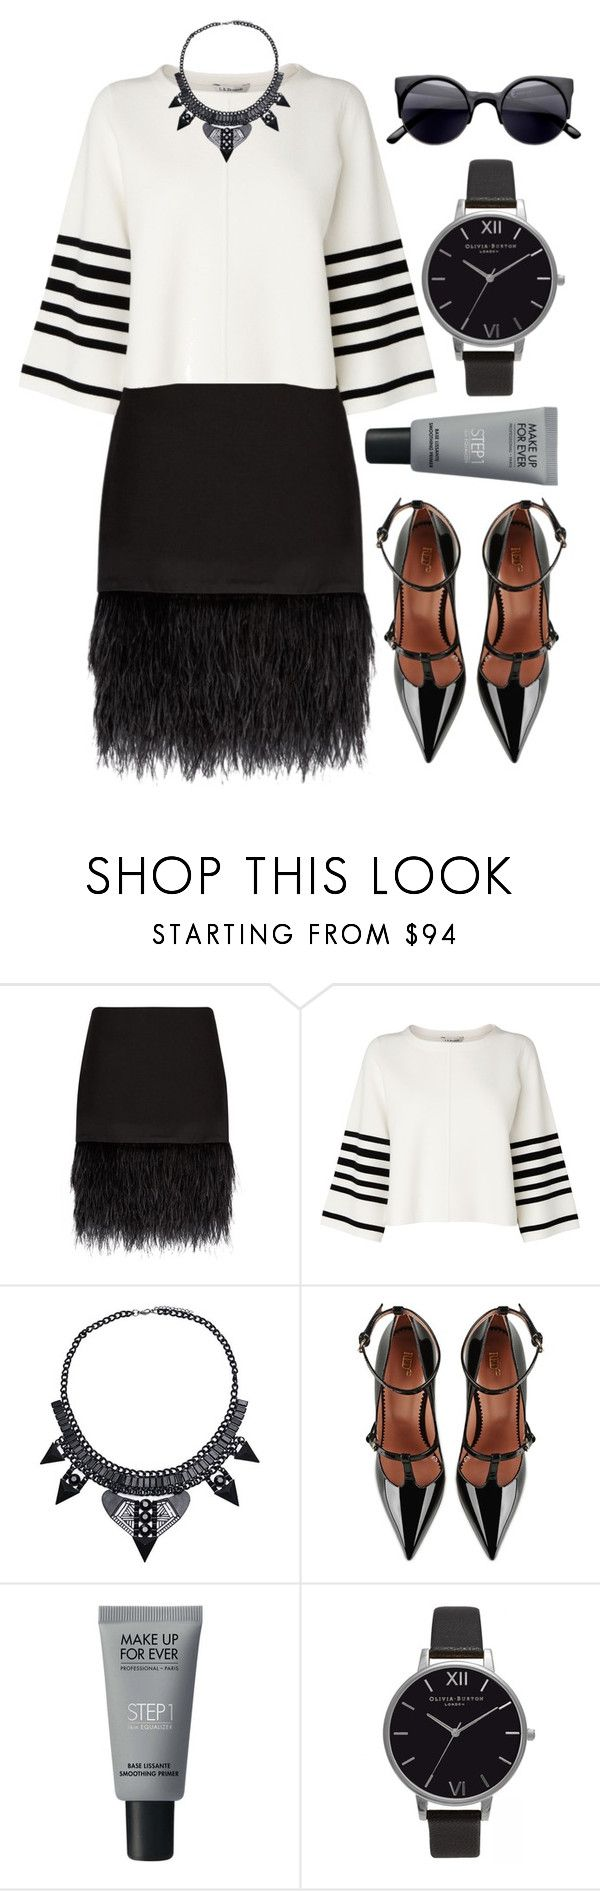 """""""Untitled #700"""" by ssm1562 ❤ liked on Polyvore featuring Polo Ralph Lauren, L.K.Bennett, RED Valentino, MAKE UP FOR EVER and Olivia Burton"""